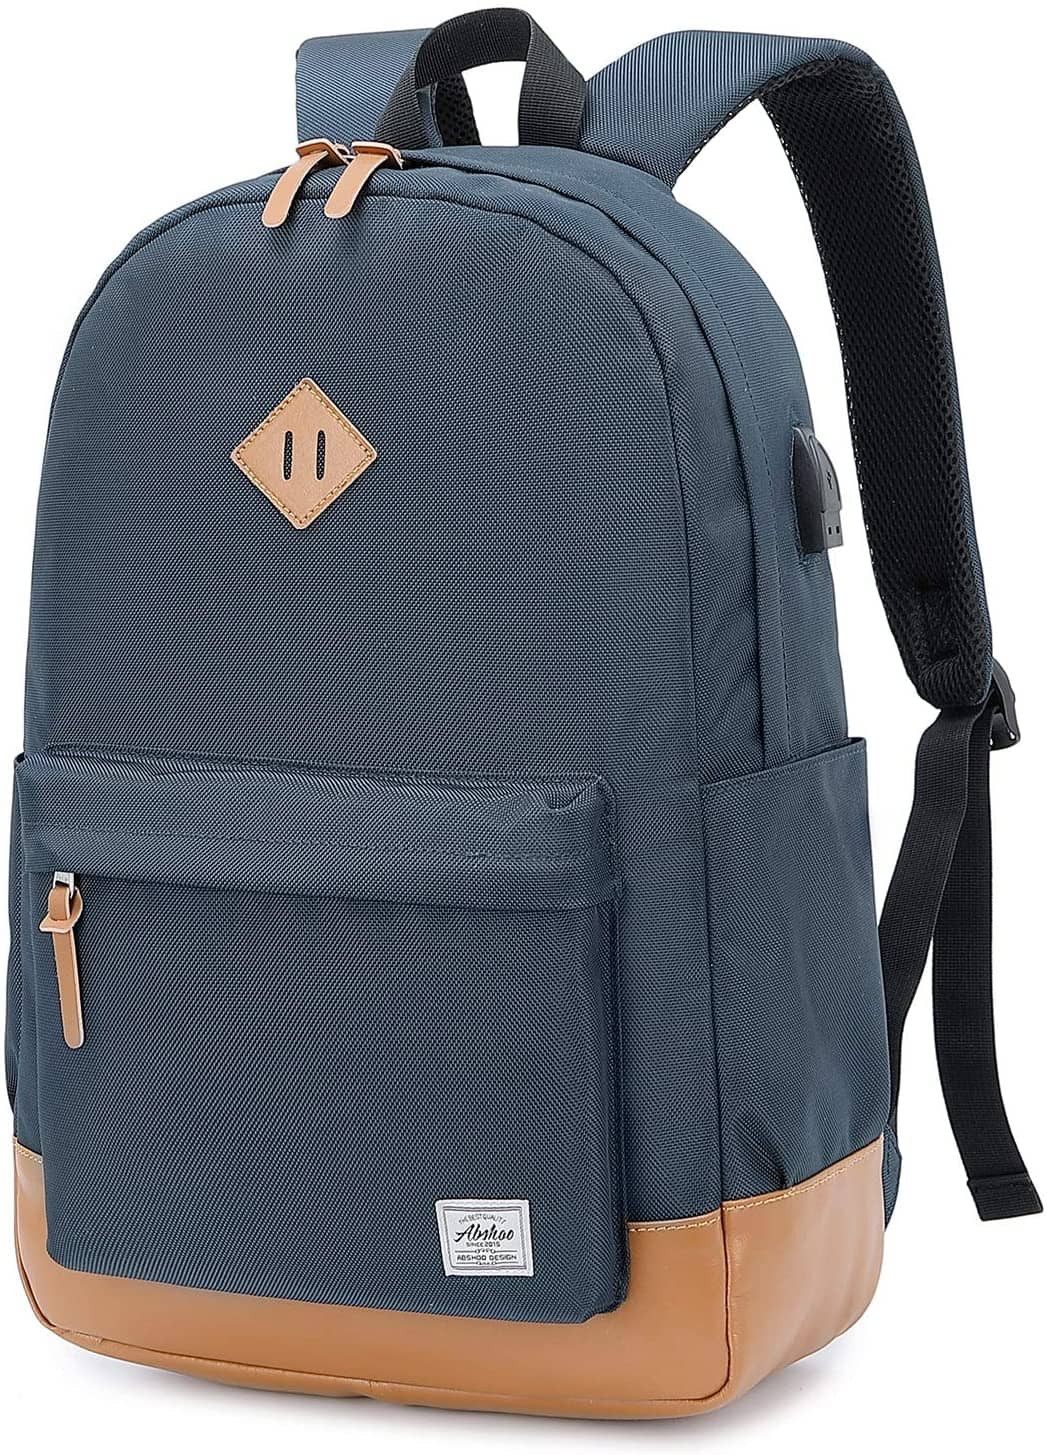 13 Most Durable Backpacks for College Students in 2021